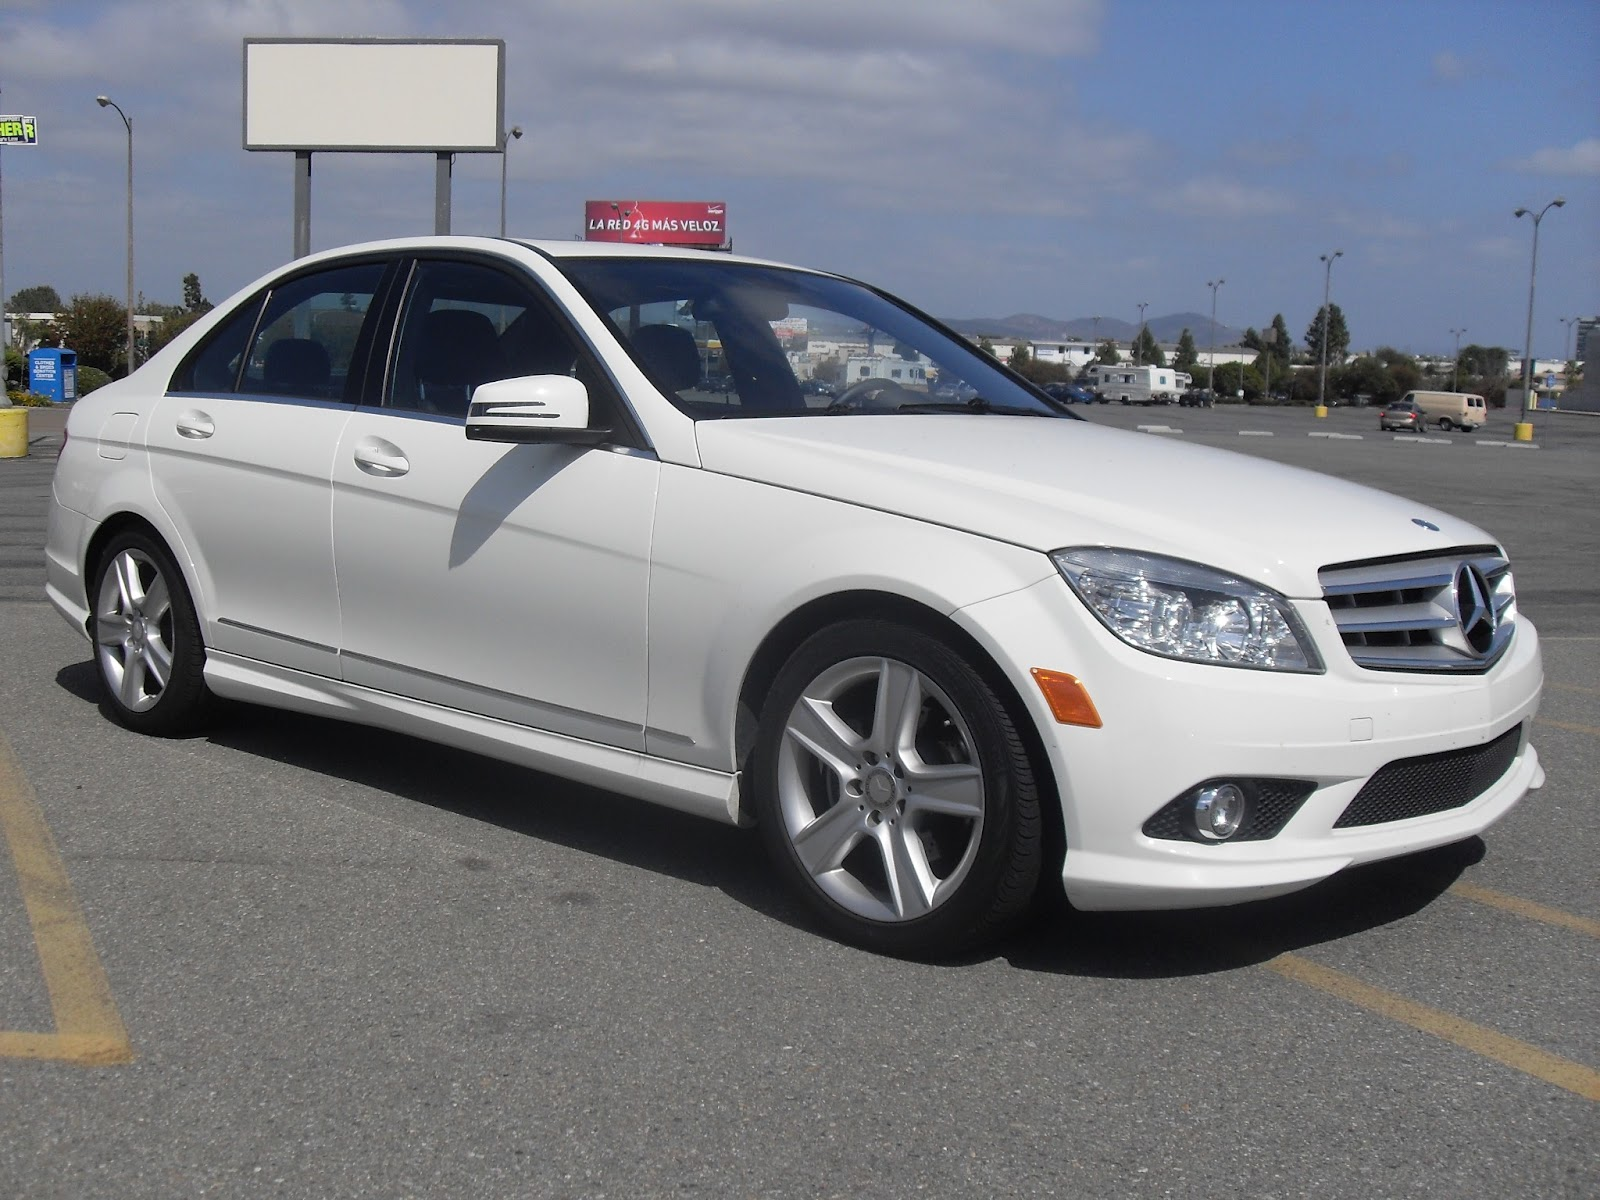 2010 mercedes benz c300 white t tak auto service for Mercedes benz c service cost